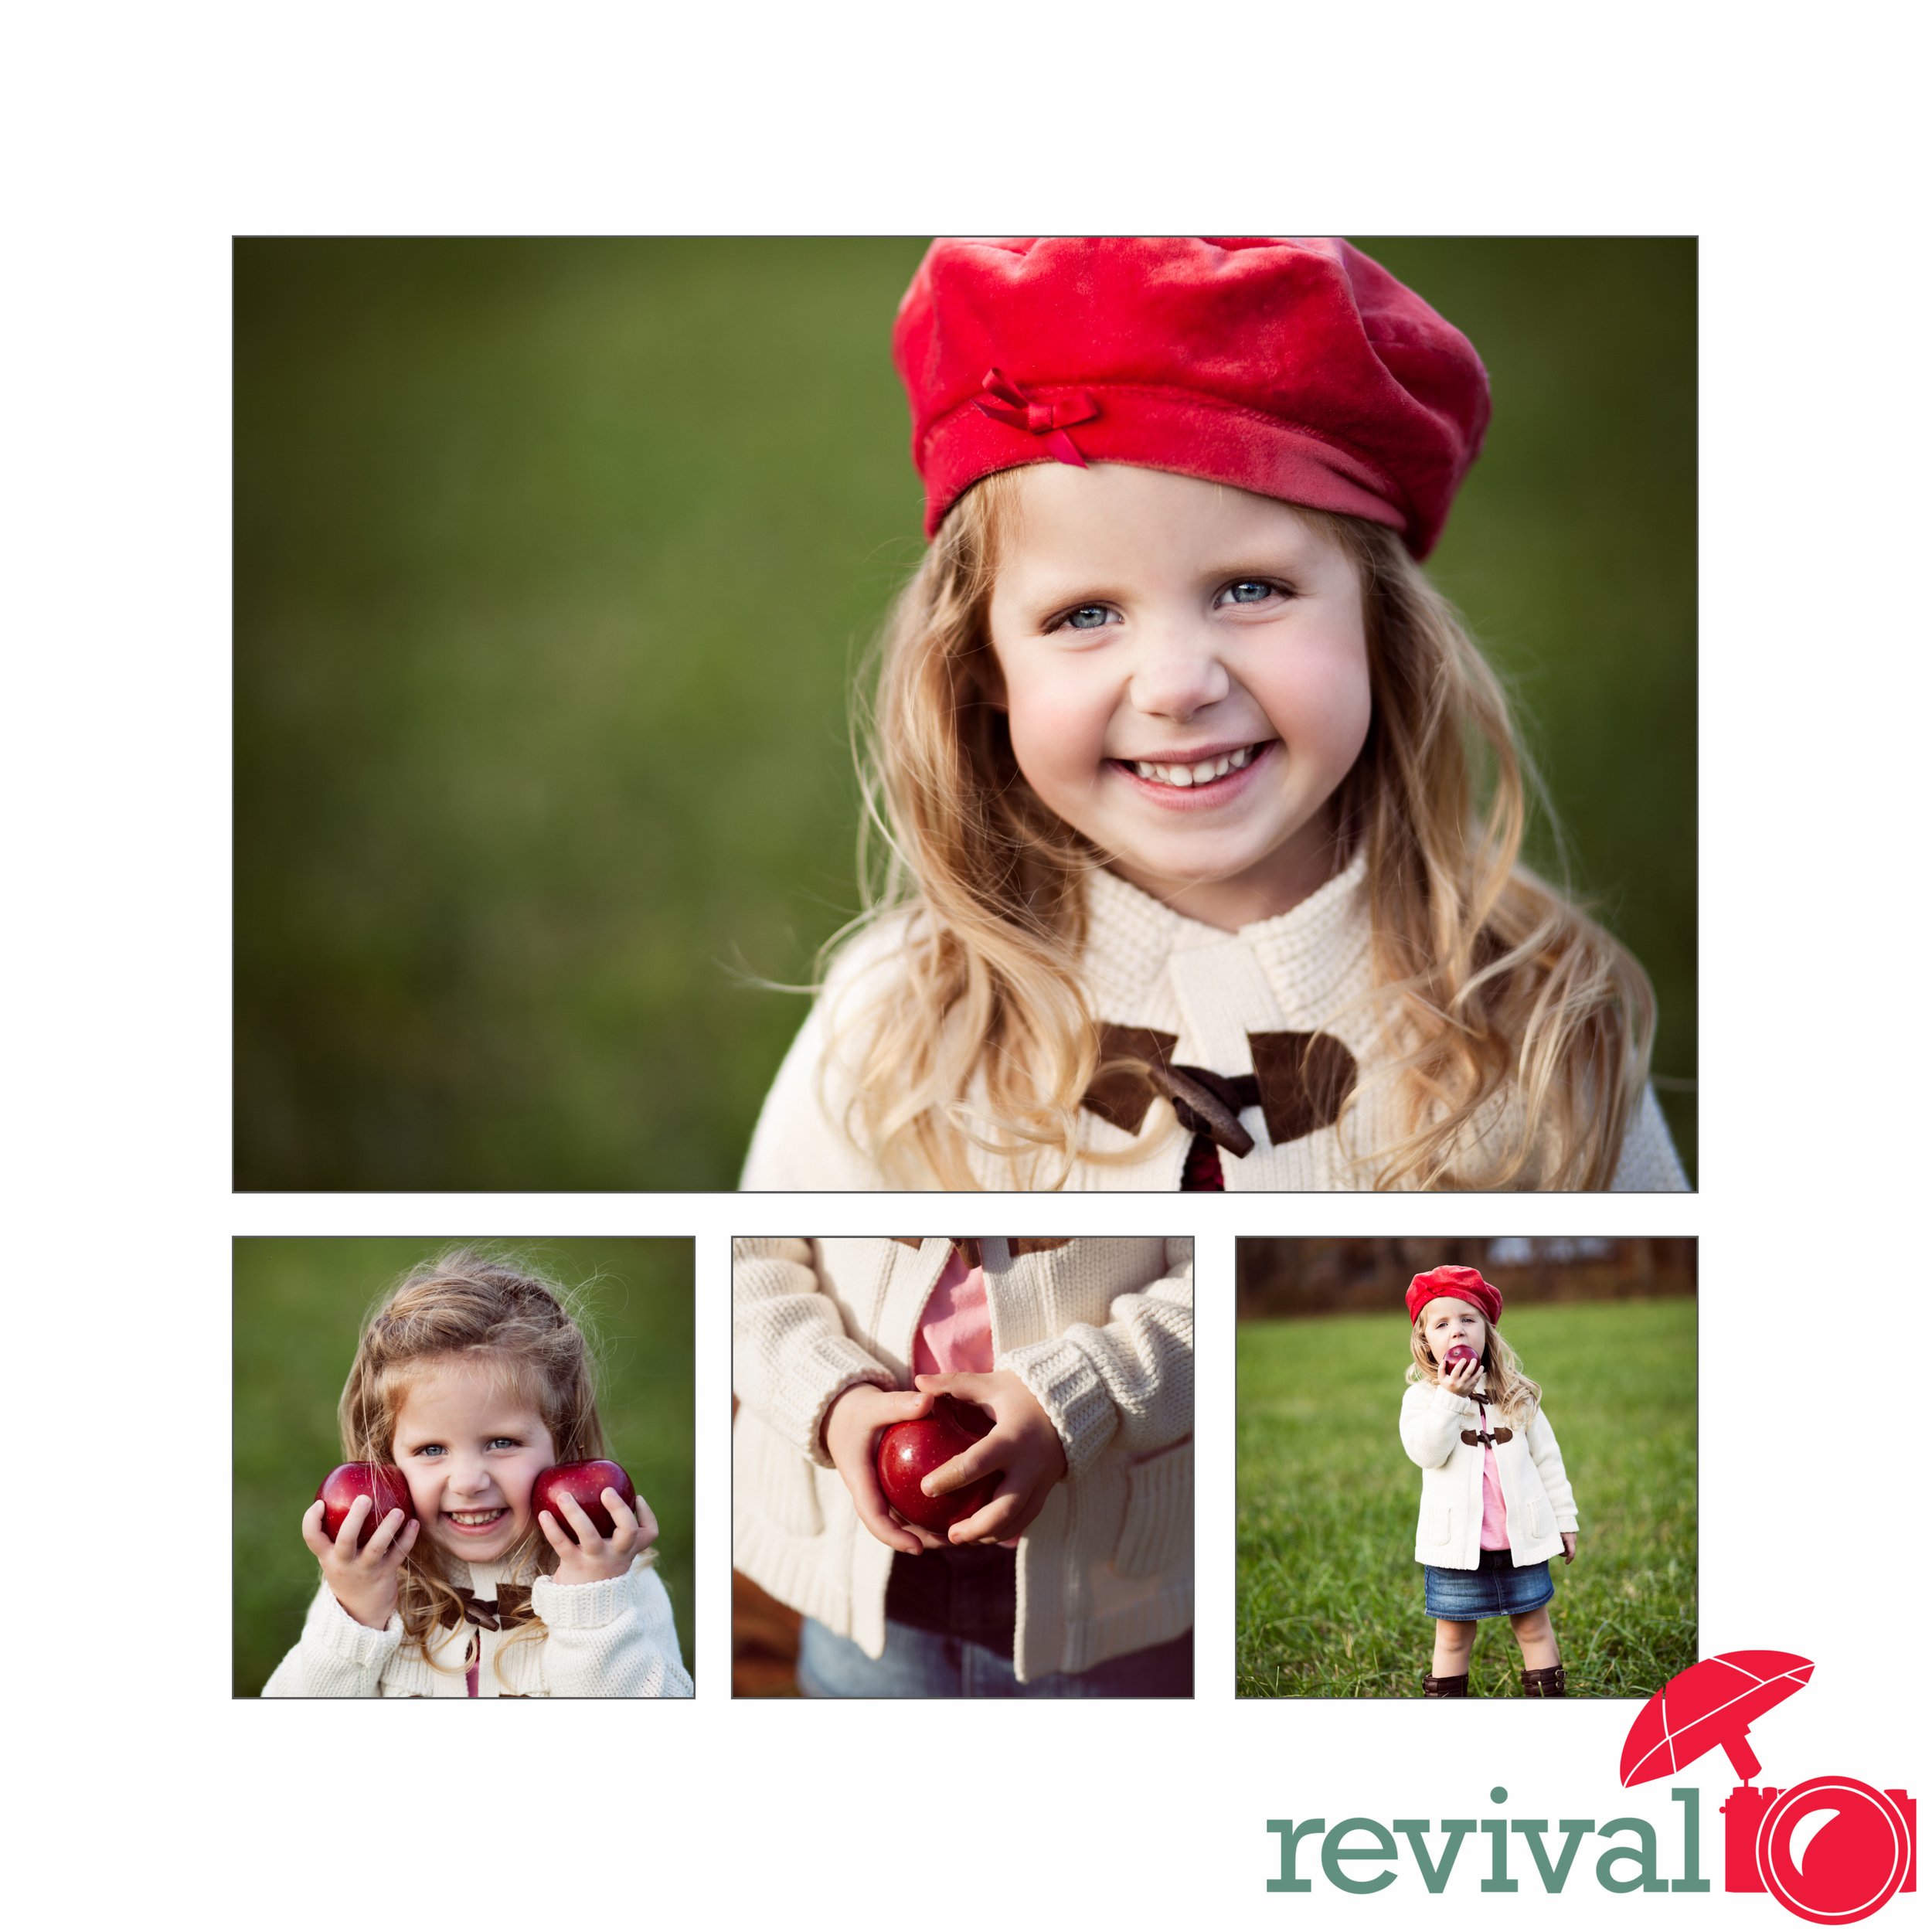 Family photos by Revival Photography North Carolina Photographers Valle Crucis, NC